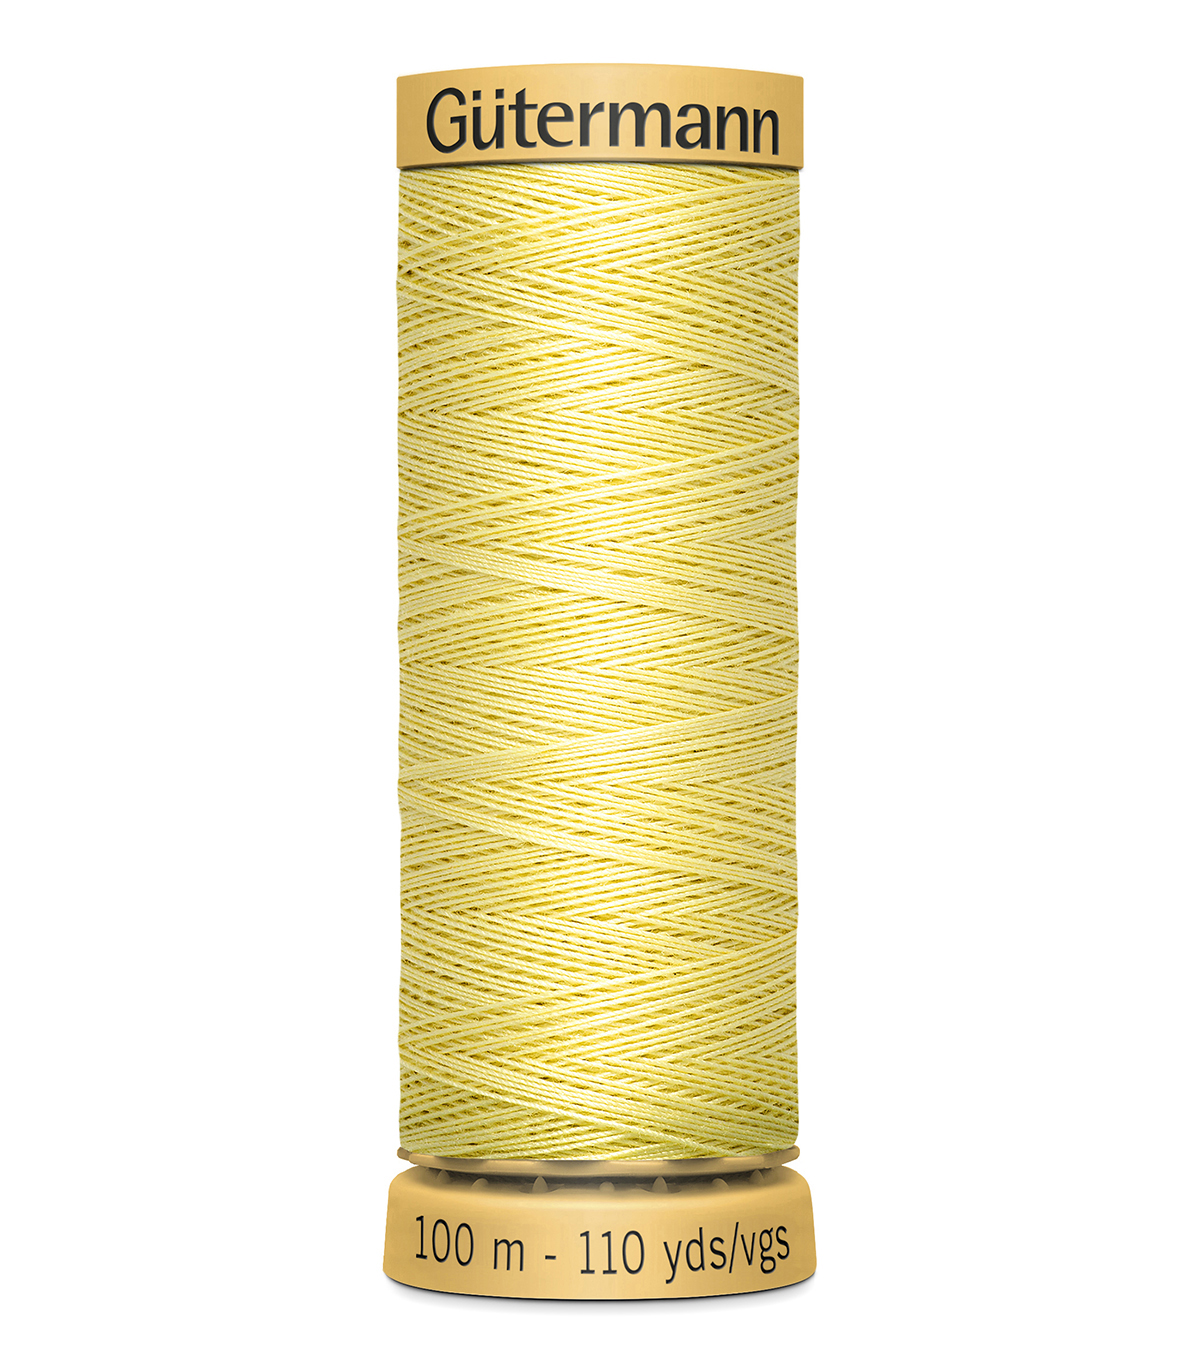 Gutermann Sew All Polyester Thread 110 Yards-Oranges & Yellows , Light Yellow